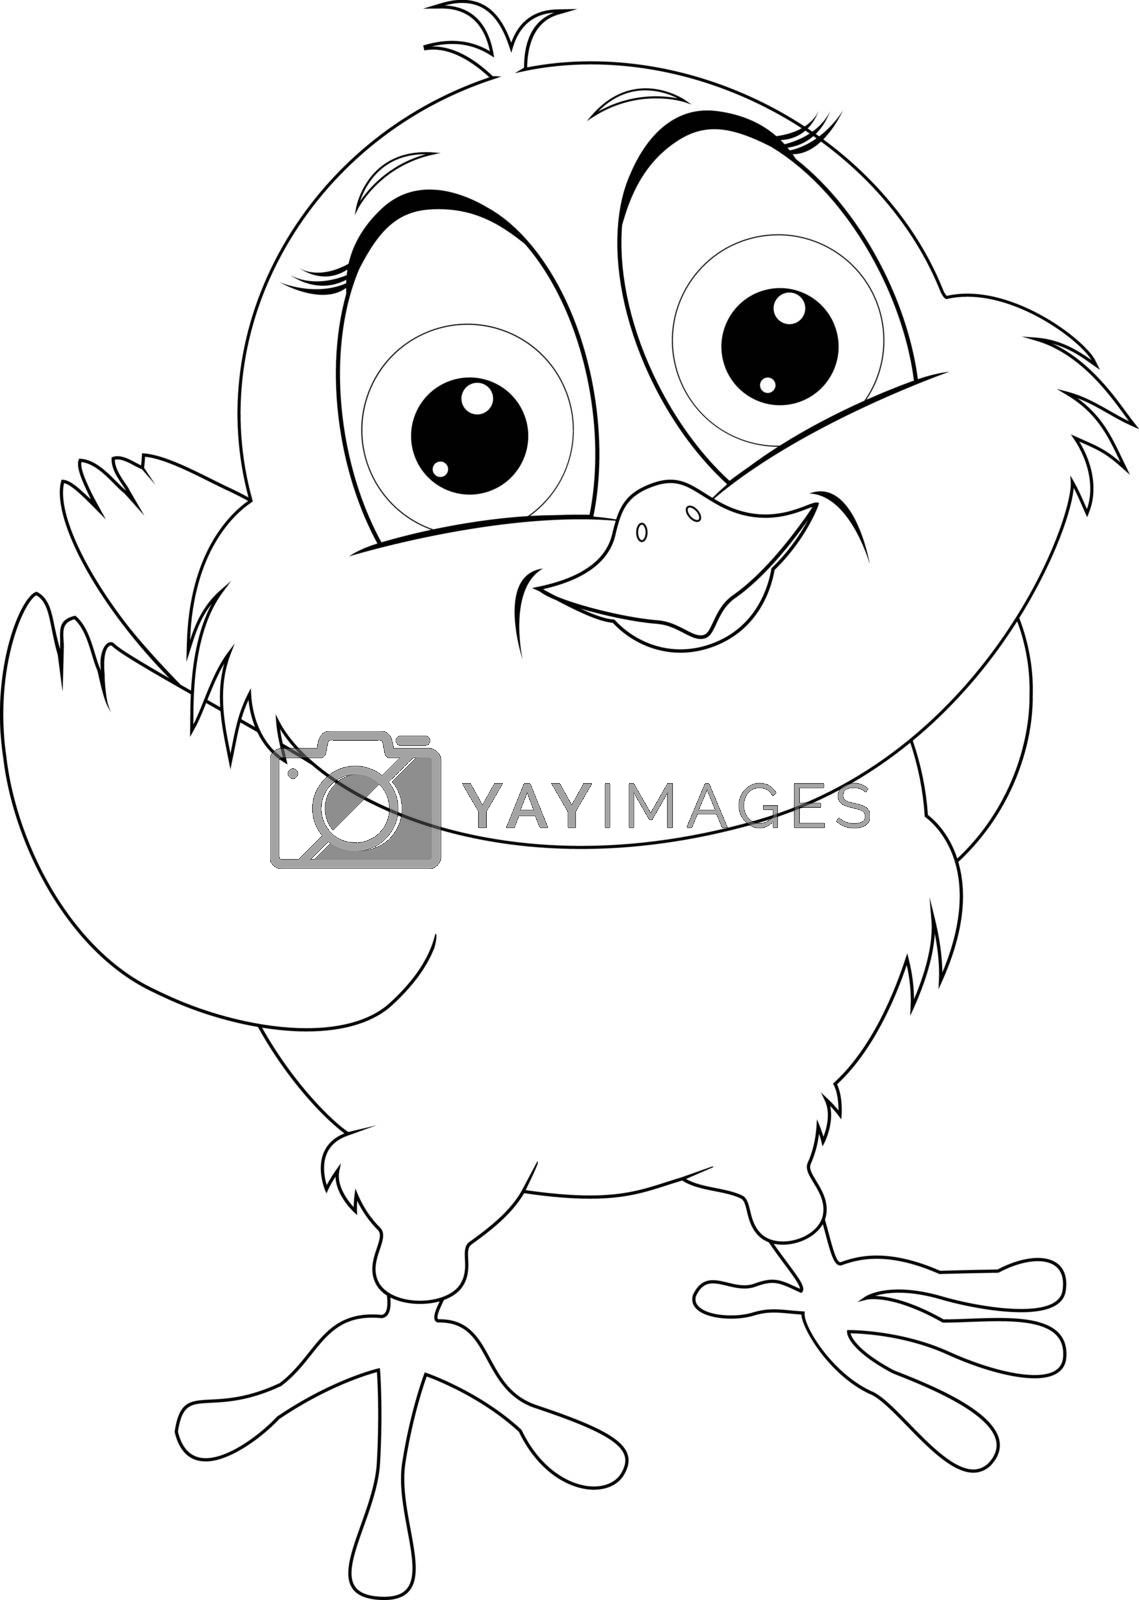 Chick outline sketch on a white background. Cartoon little chick for coloring.